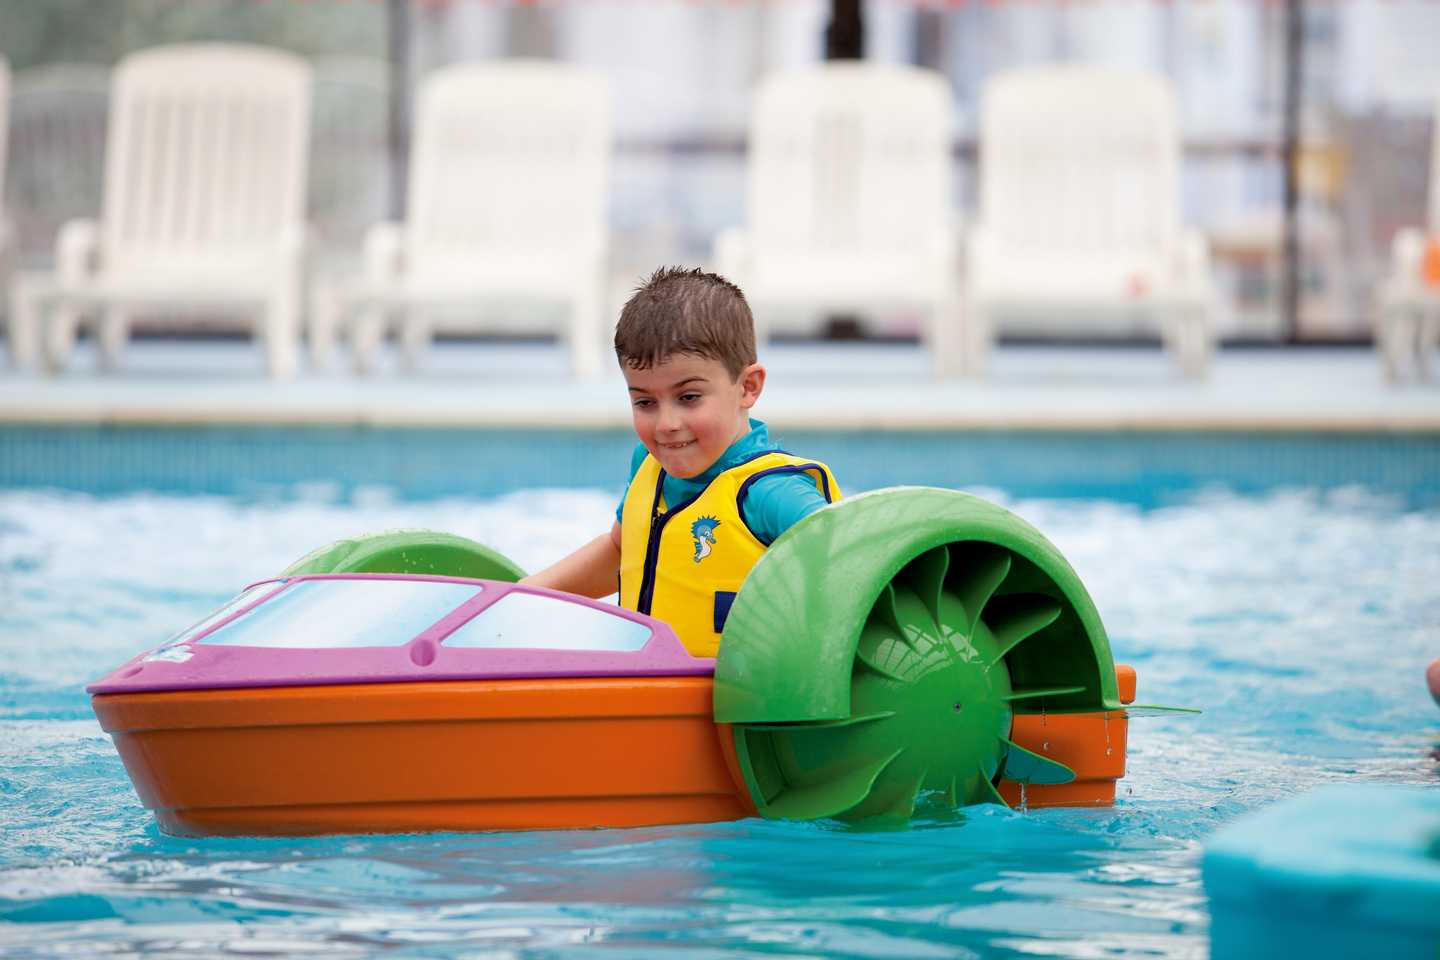 Boy playing in pool on Aqua Paddler